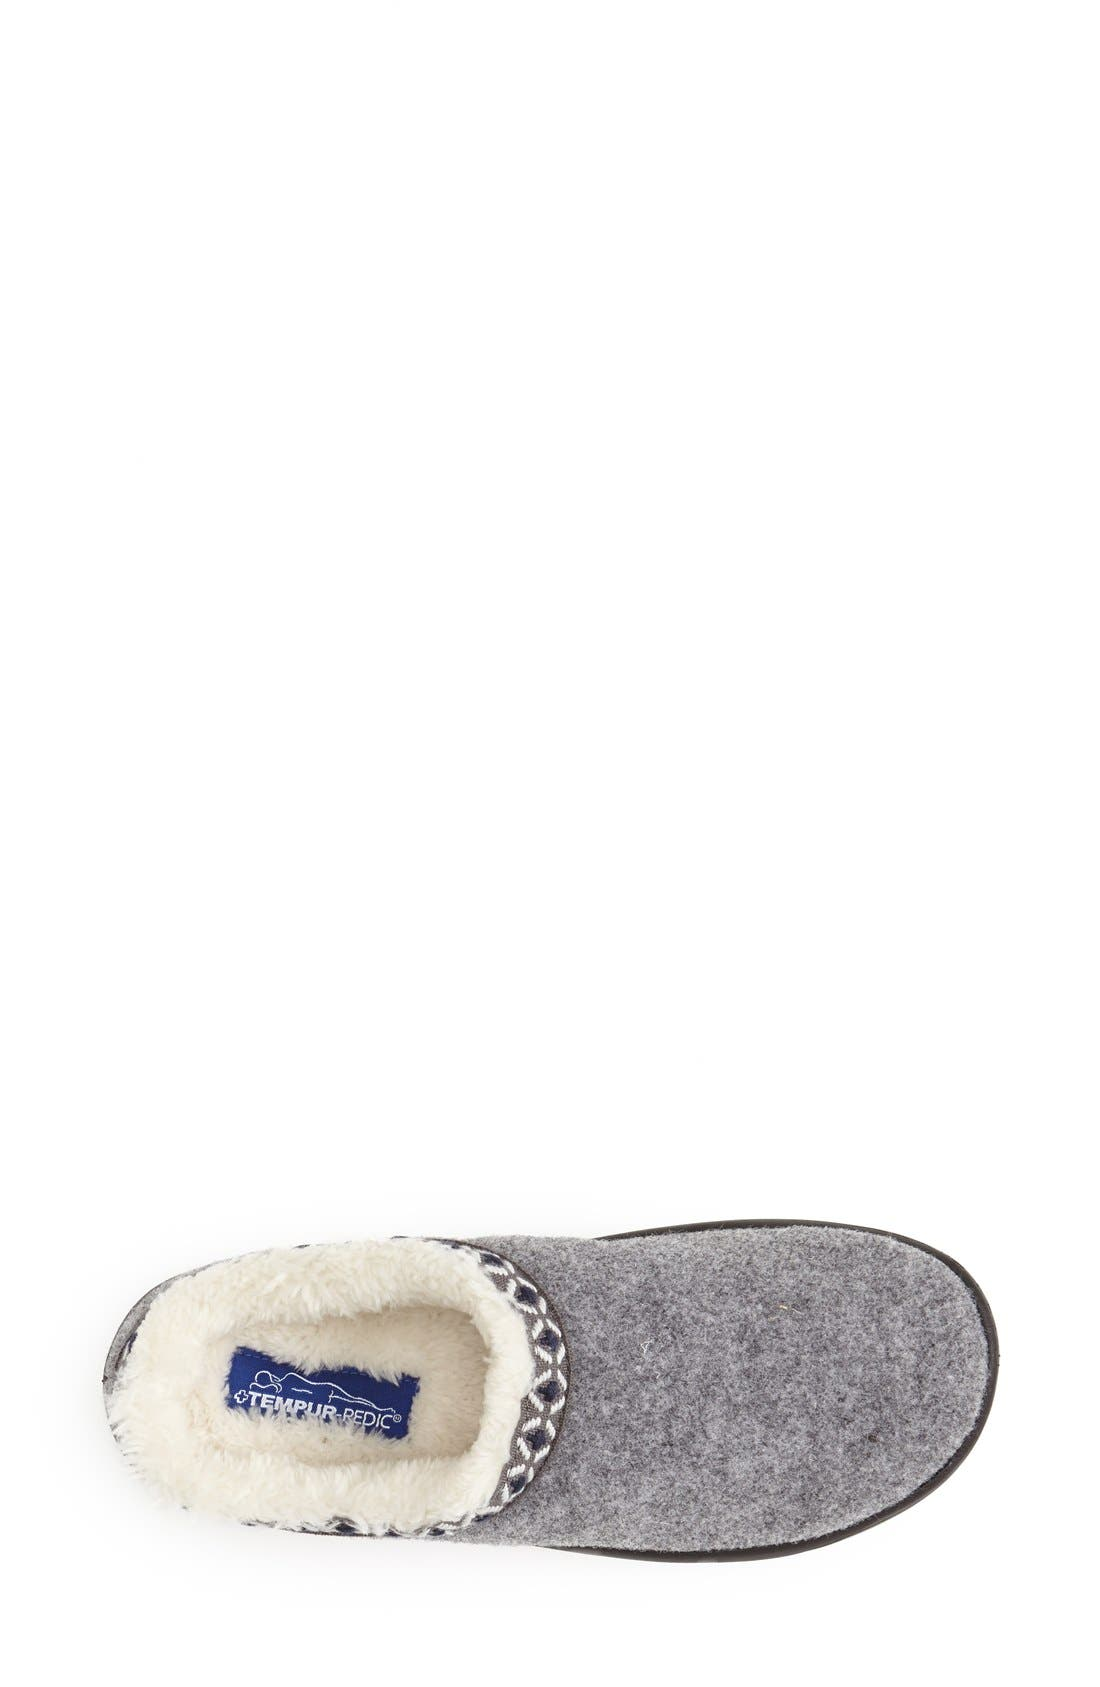 Alternate Image 3  - Tempur-Pedic® 'Subartic' Slipper (Women)